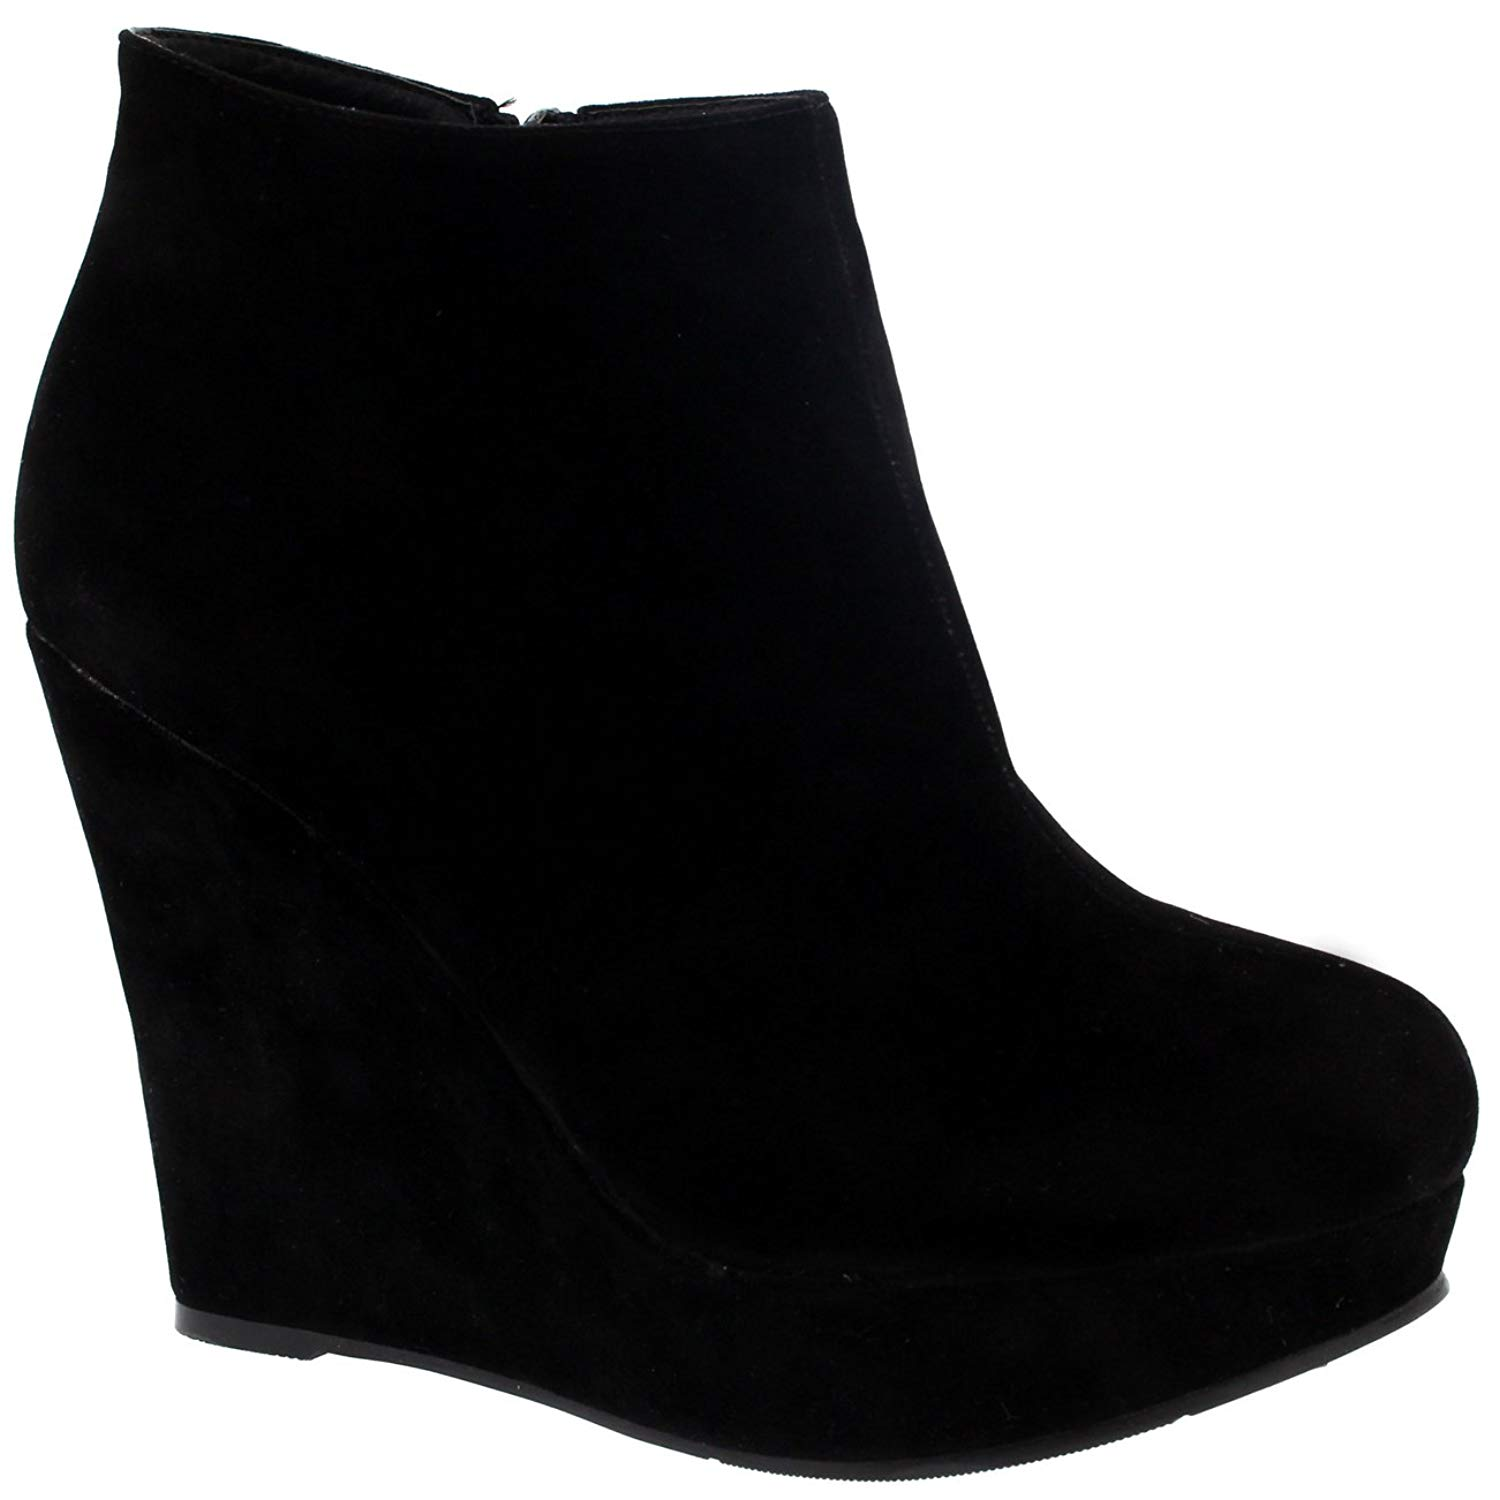 1b33b103c3c1d Cheap Black Ankle Boot Wedge, find Black Ankle Boot Wedge deals on ...